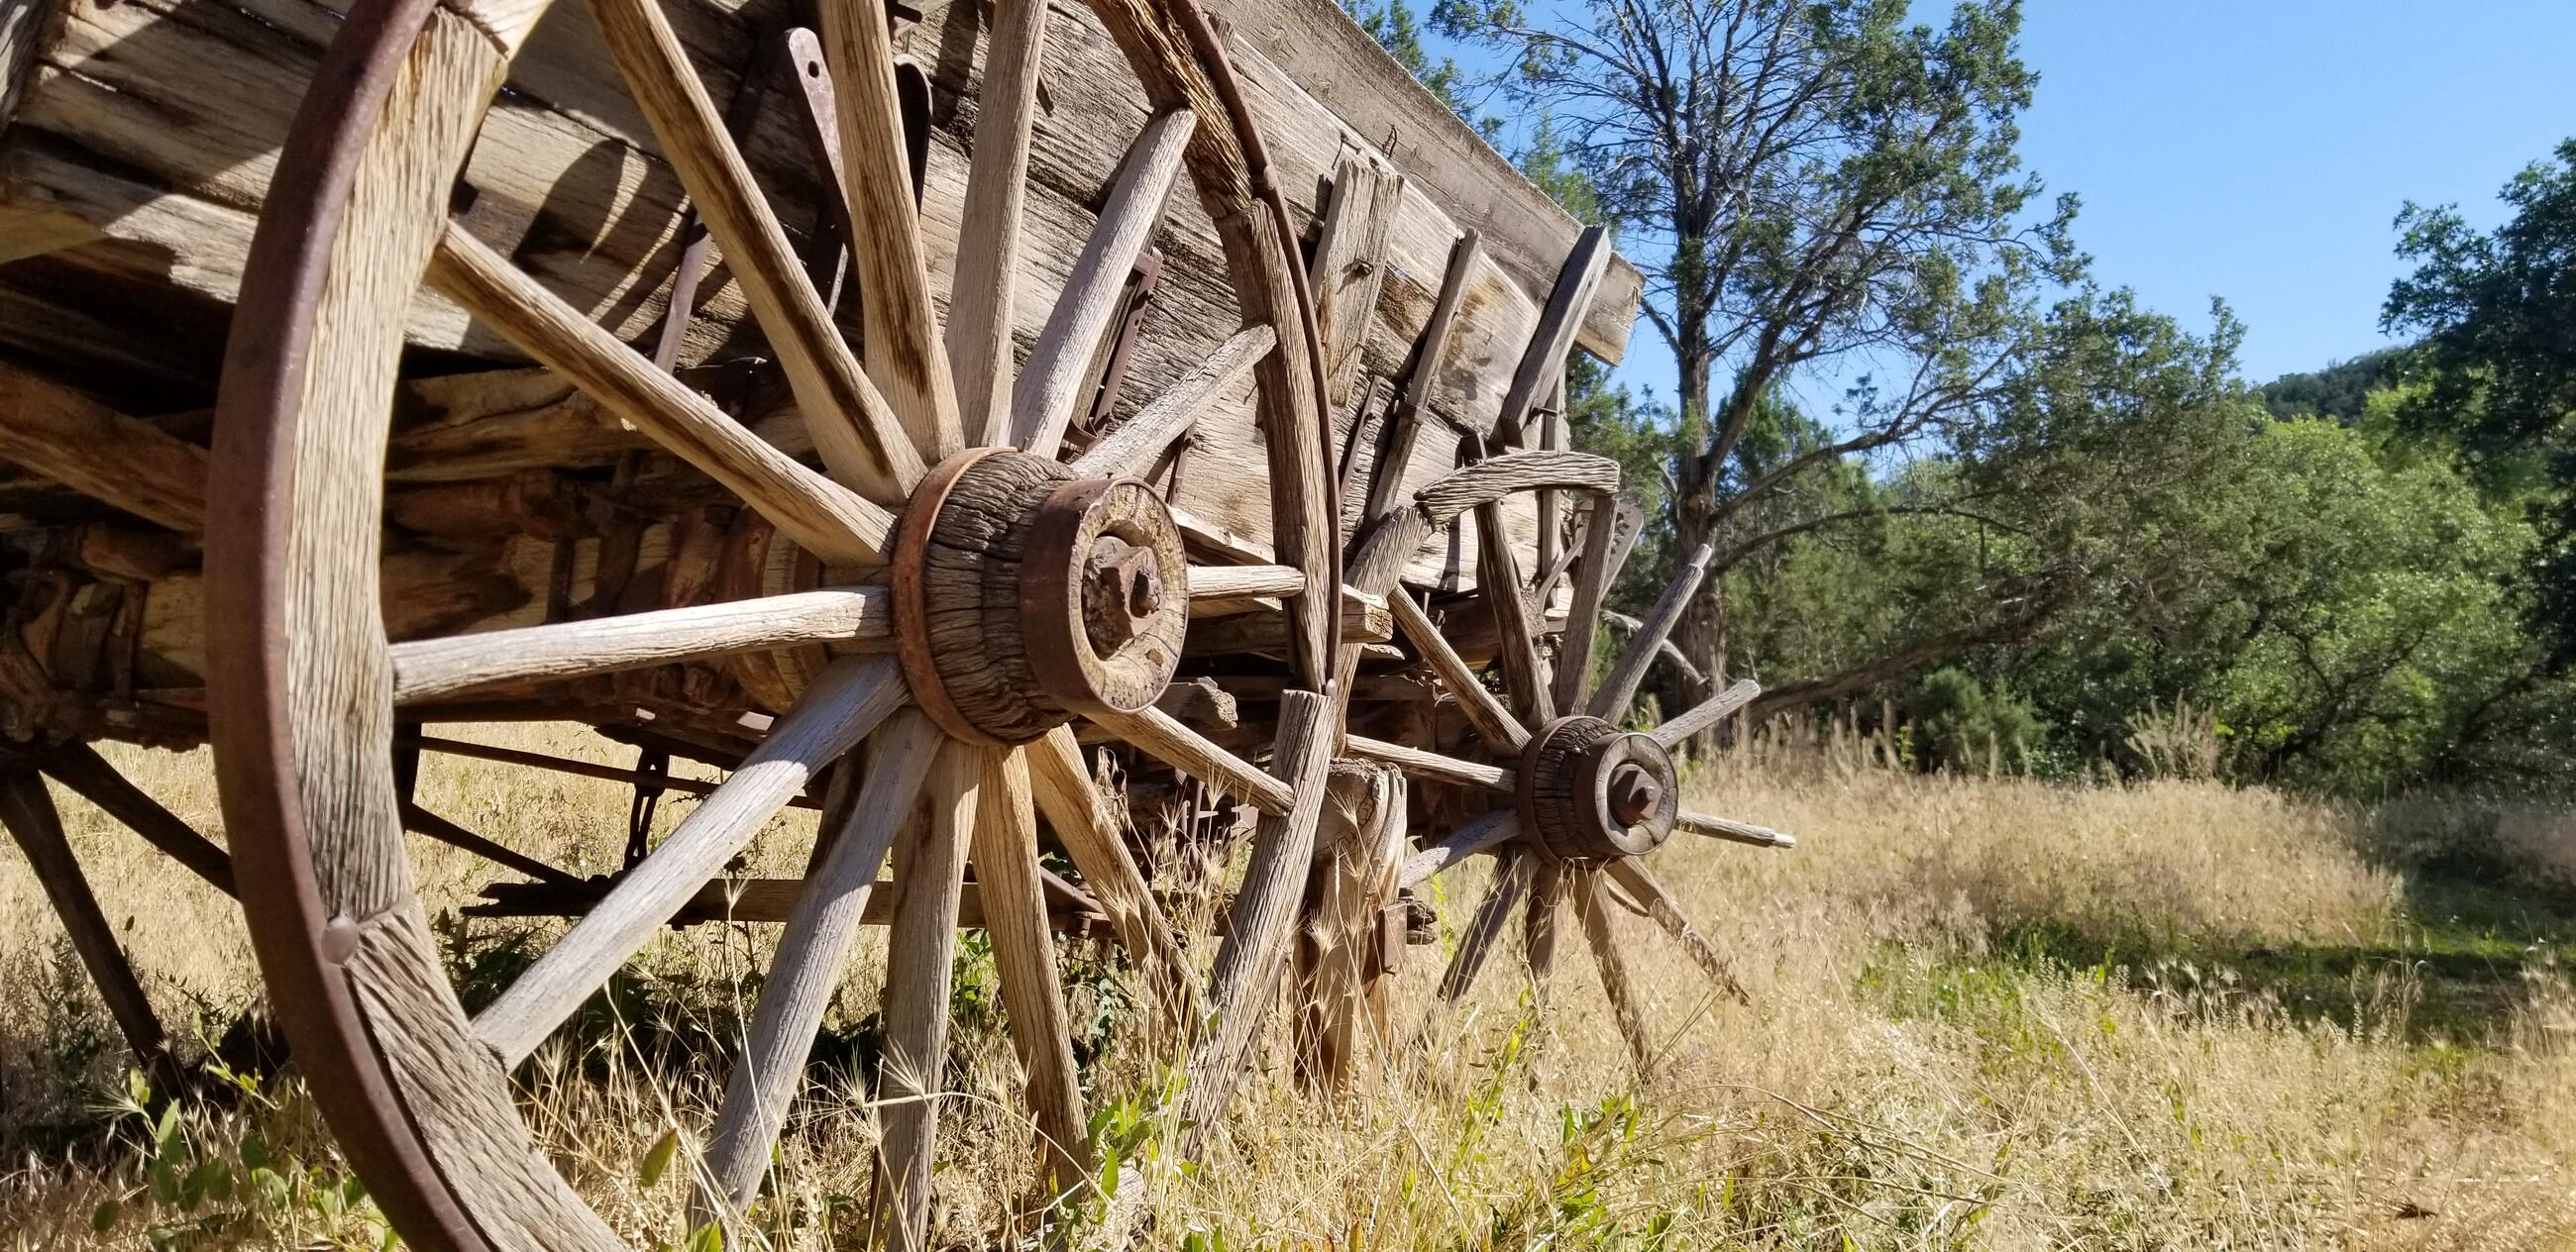 A pic of an old wagon